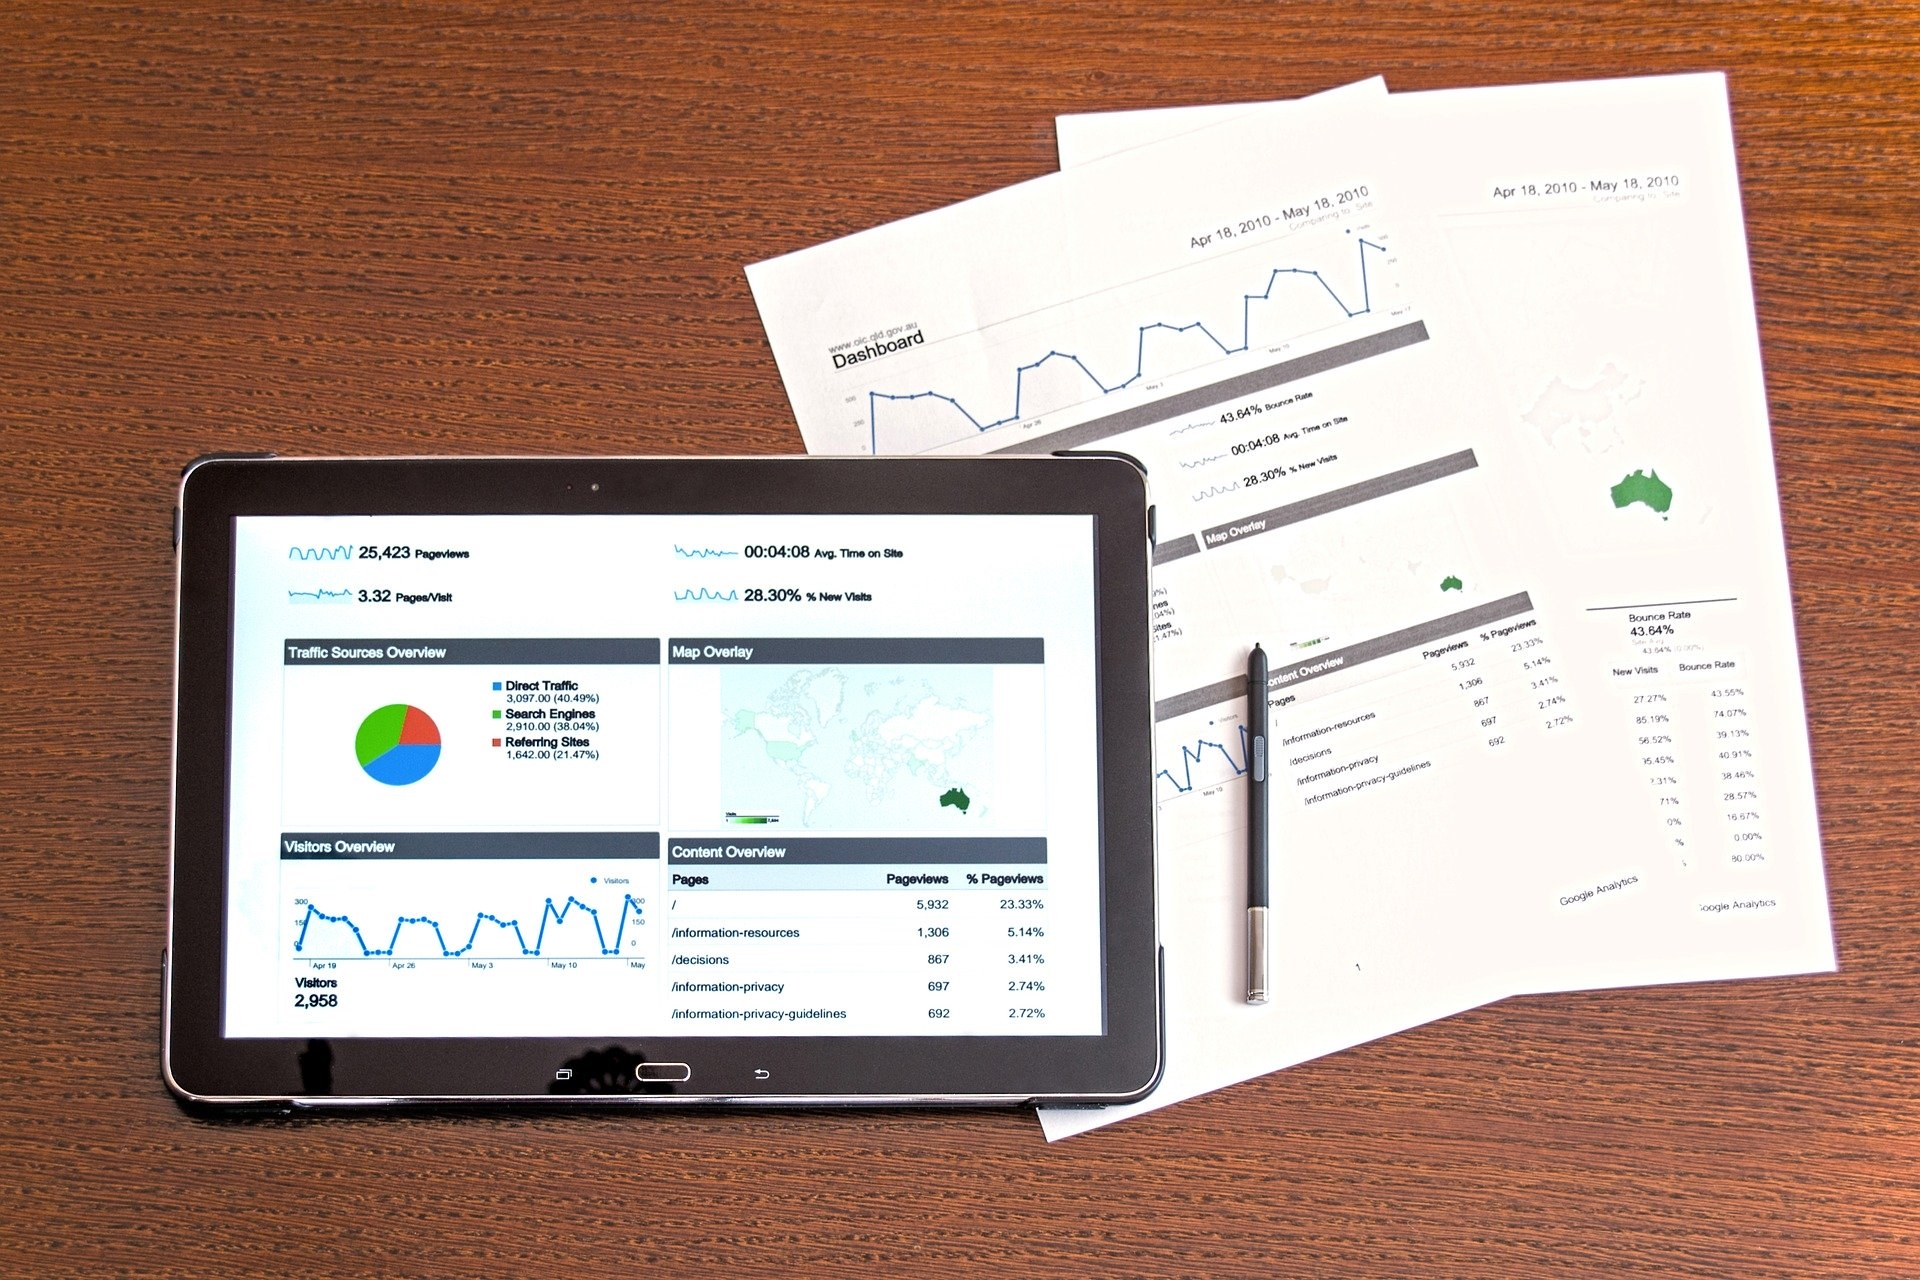 A Google Ads report on a tablet and printed out on paper.